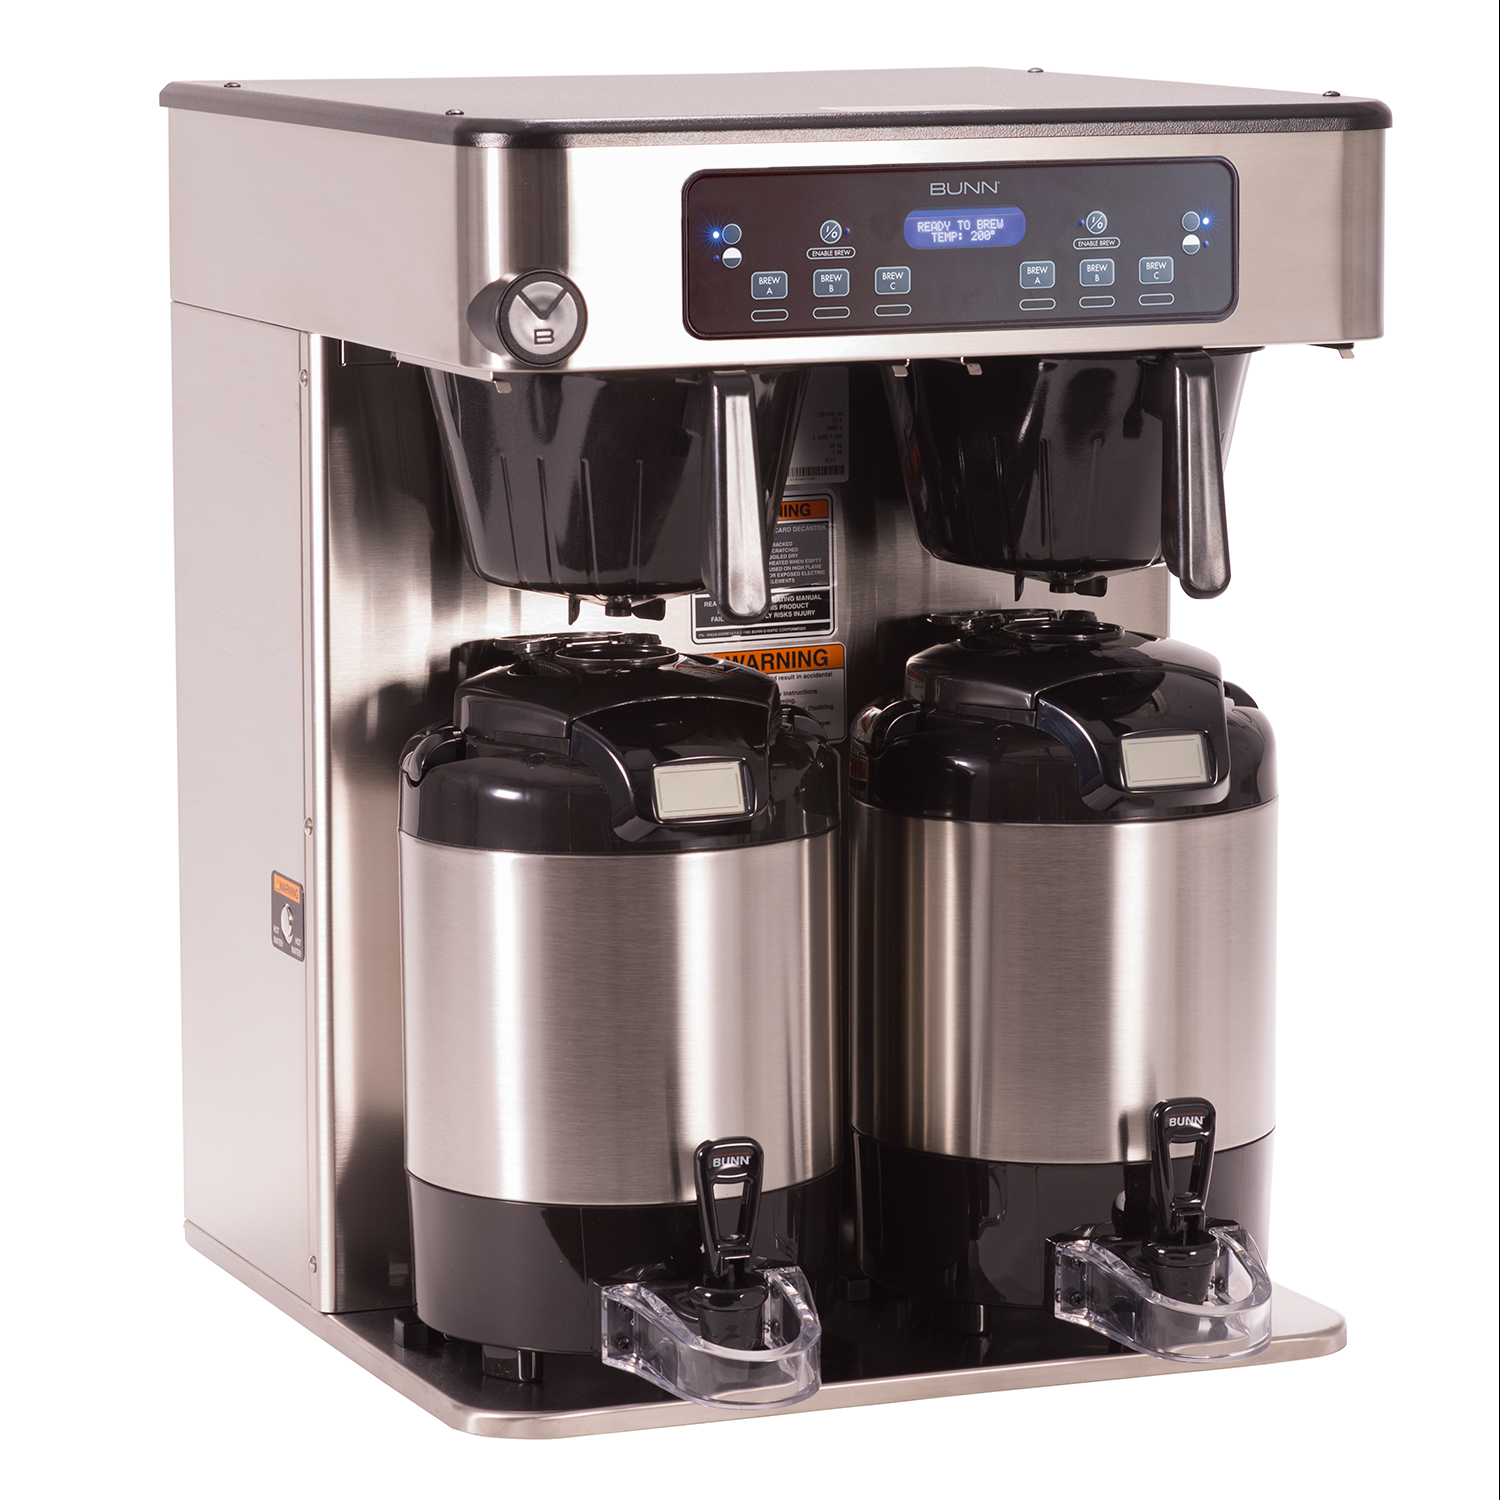 BUNN 53200.0100 coffee brewer for thermal server